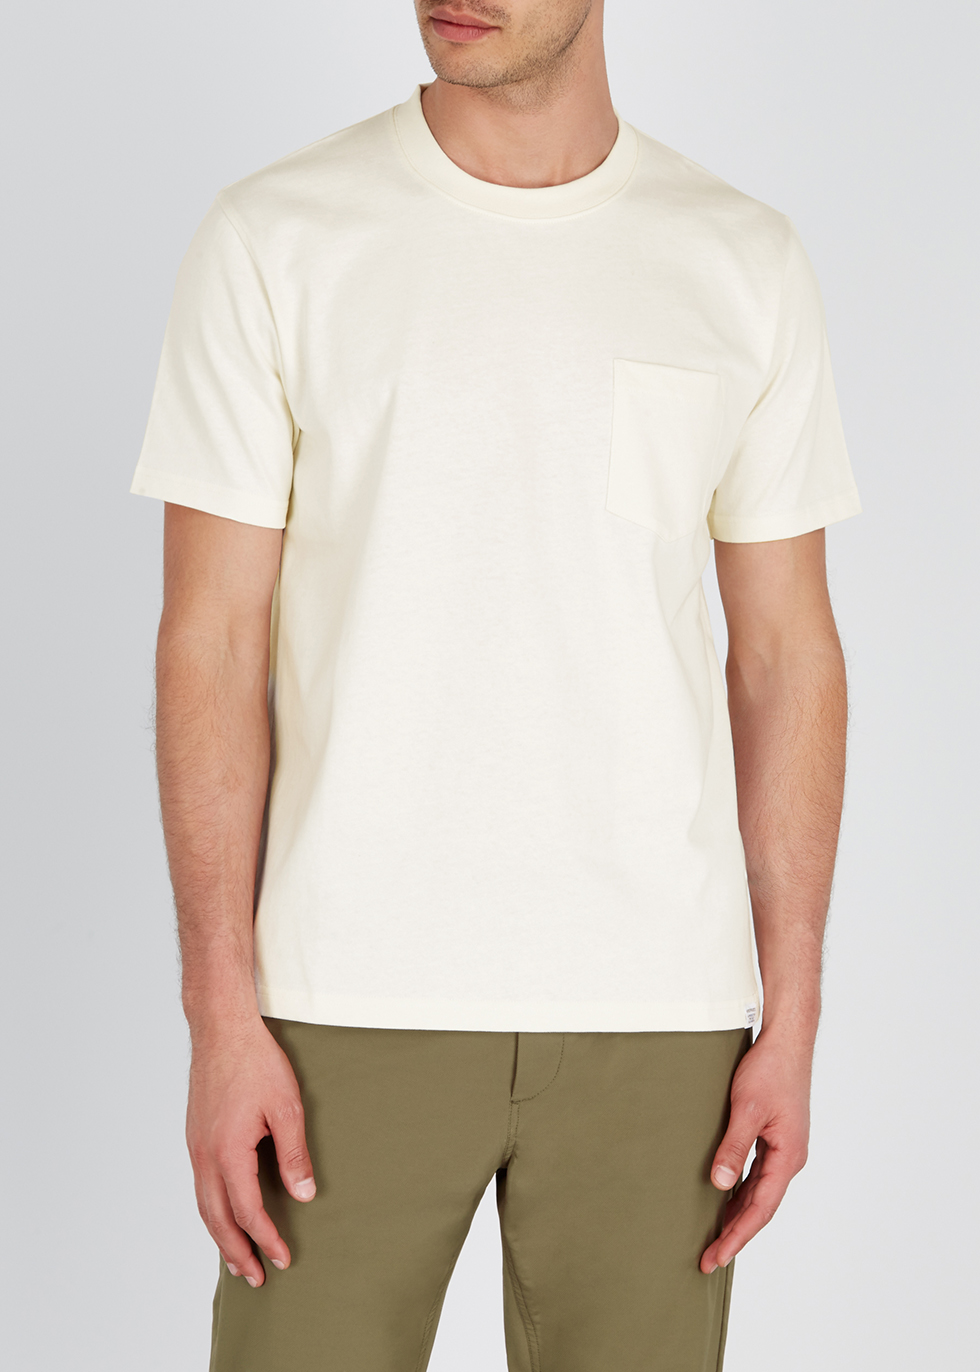 Johannes white cotton T-shirt - Norse Projects